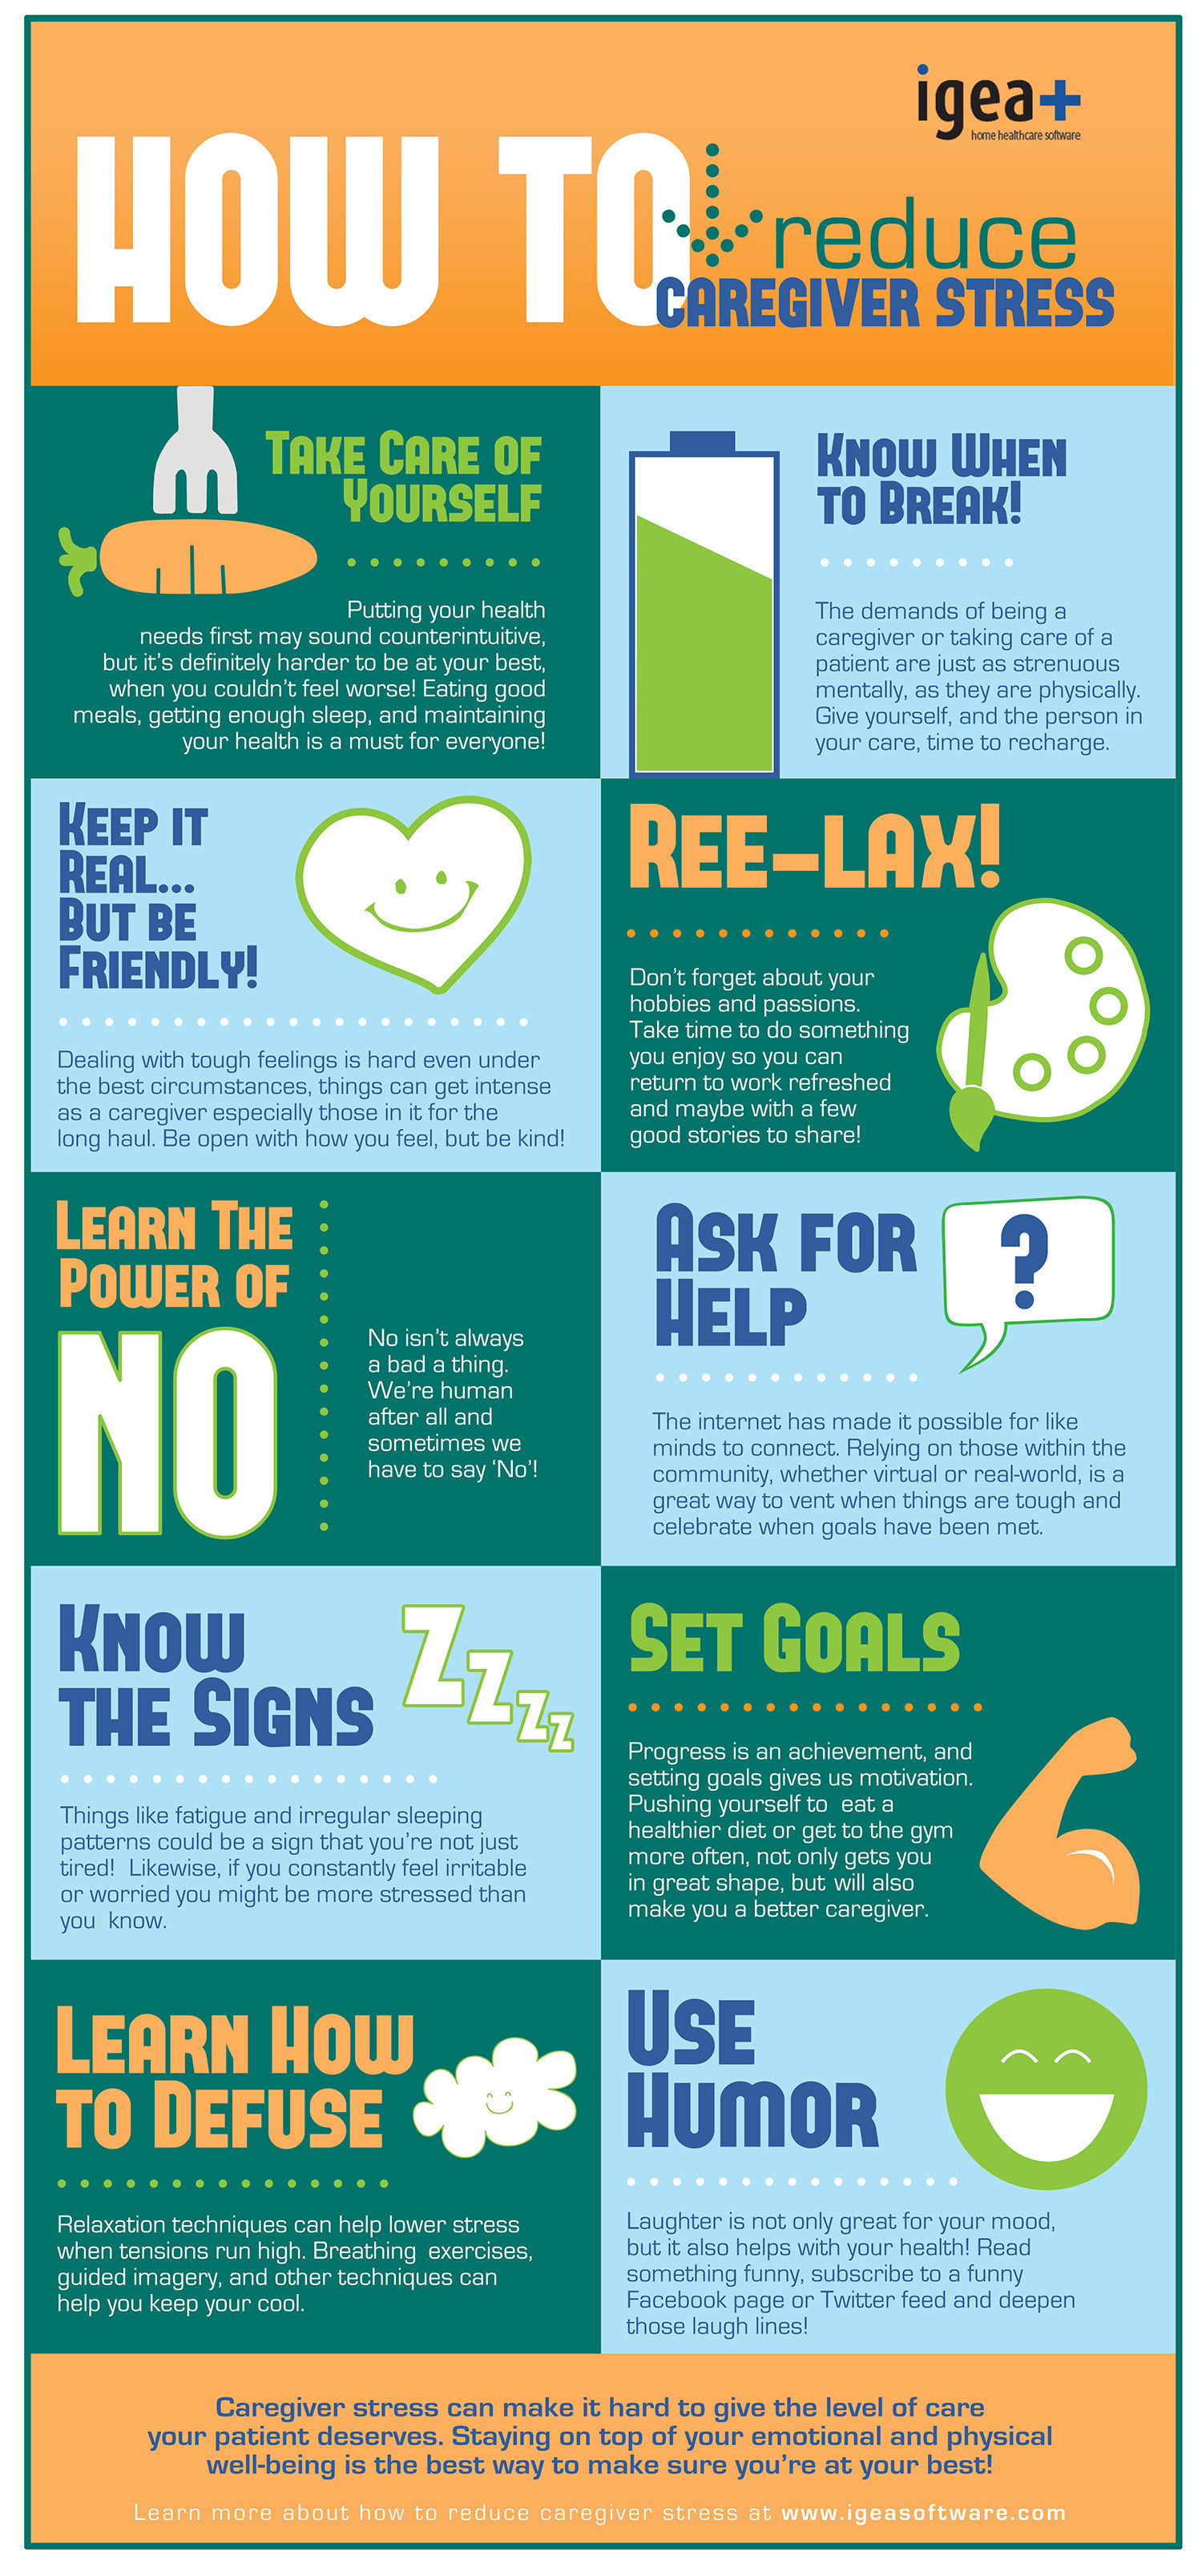 How to Reduce Caregiver Stress Infographic